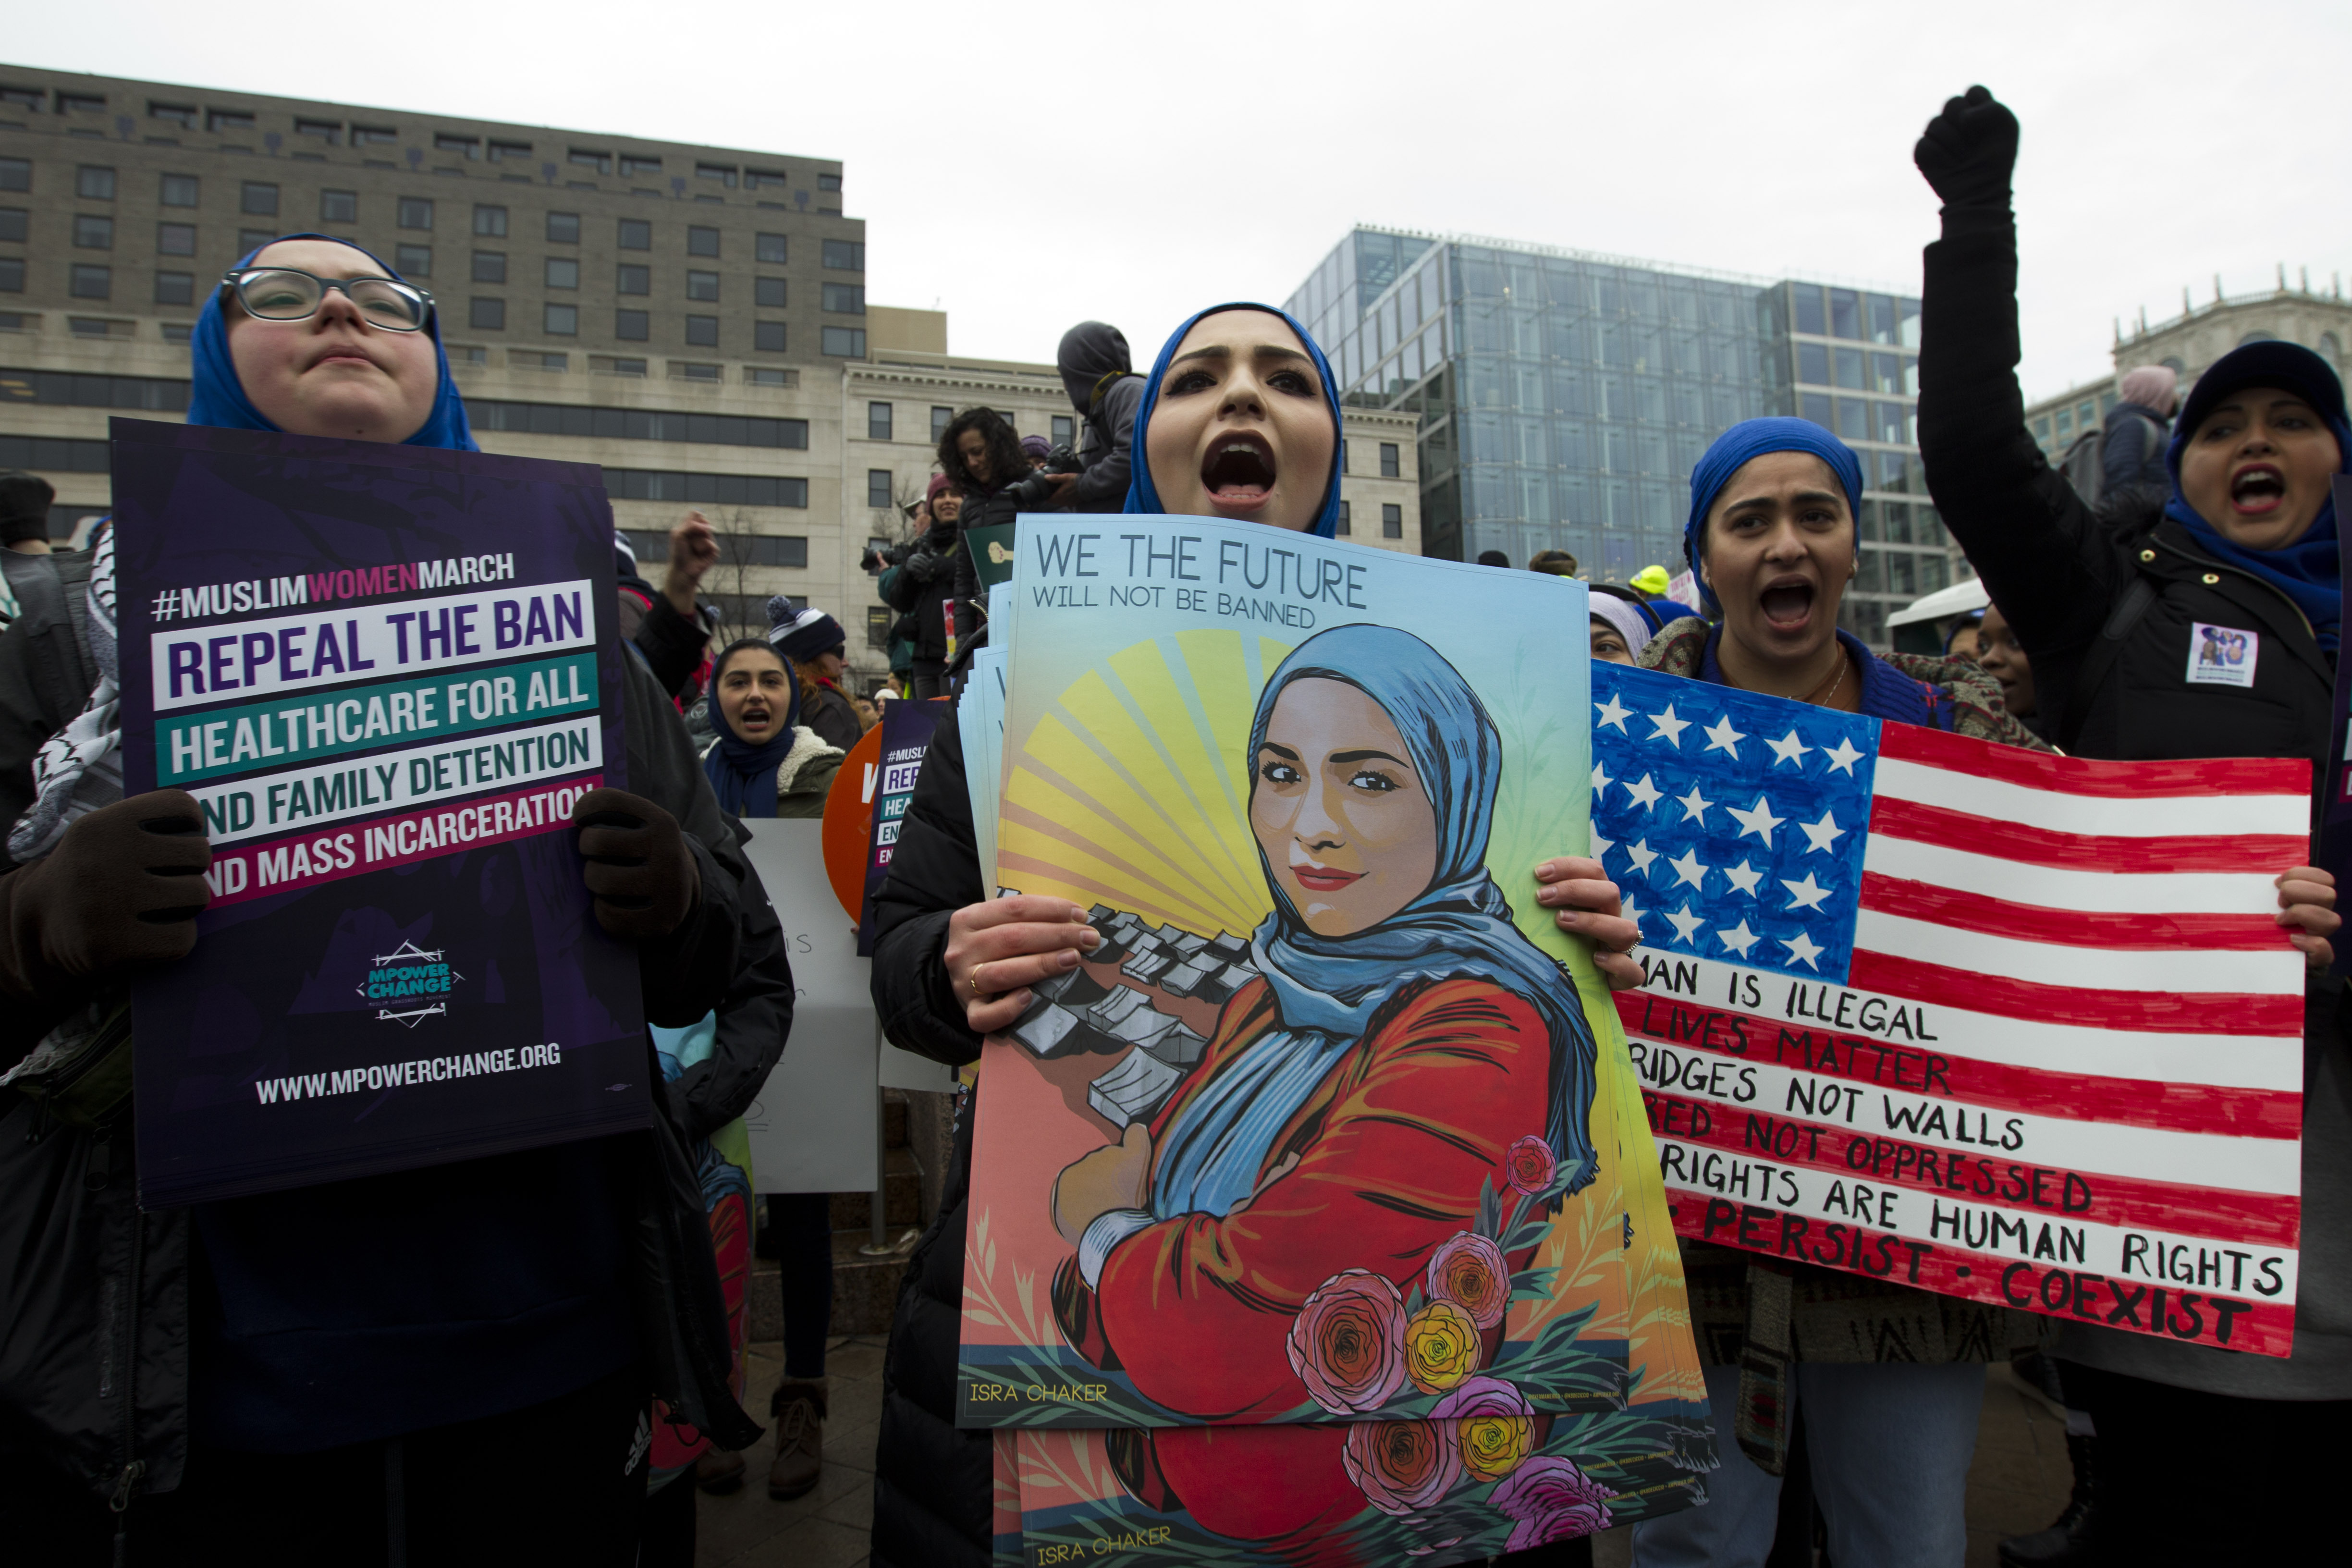 <div class='meta'><div class='origin-logo' data-origin='AP'></div><span class='caption-text' data-credit='AP Photo/Jose Luis Magana'>Demonstrators hold signs during the Women's March in Washington on Saturday, Jan. 19, 2019.</span></div>